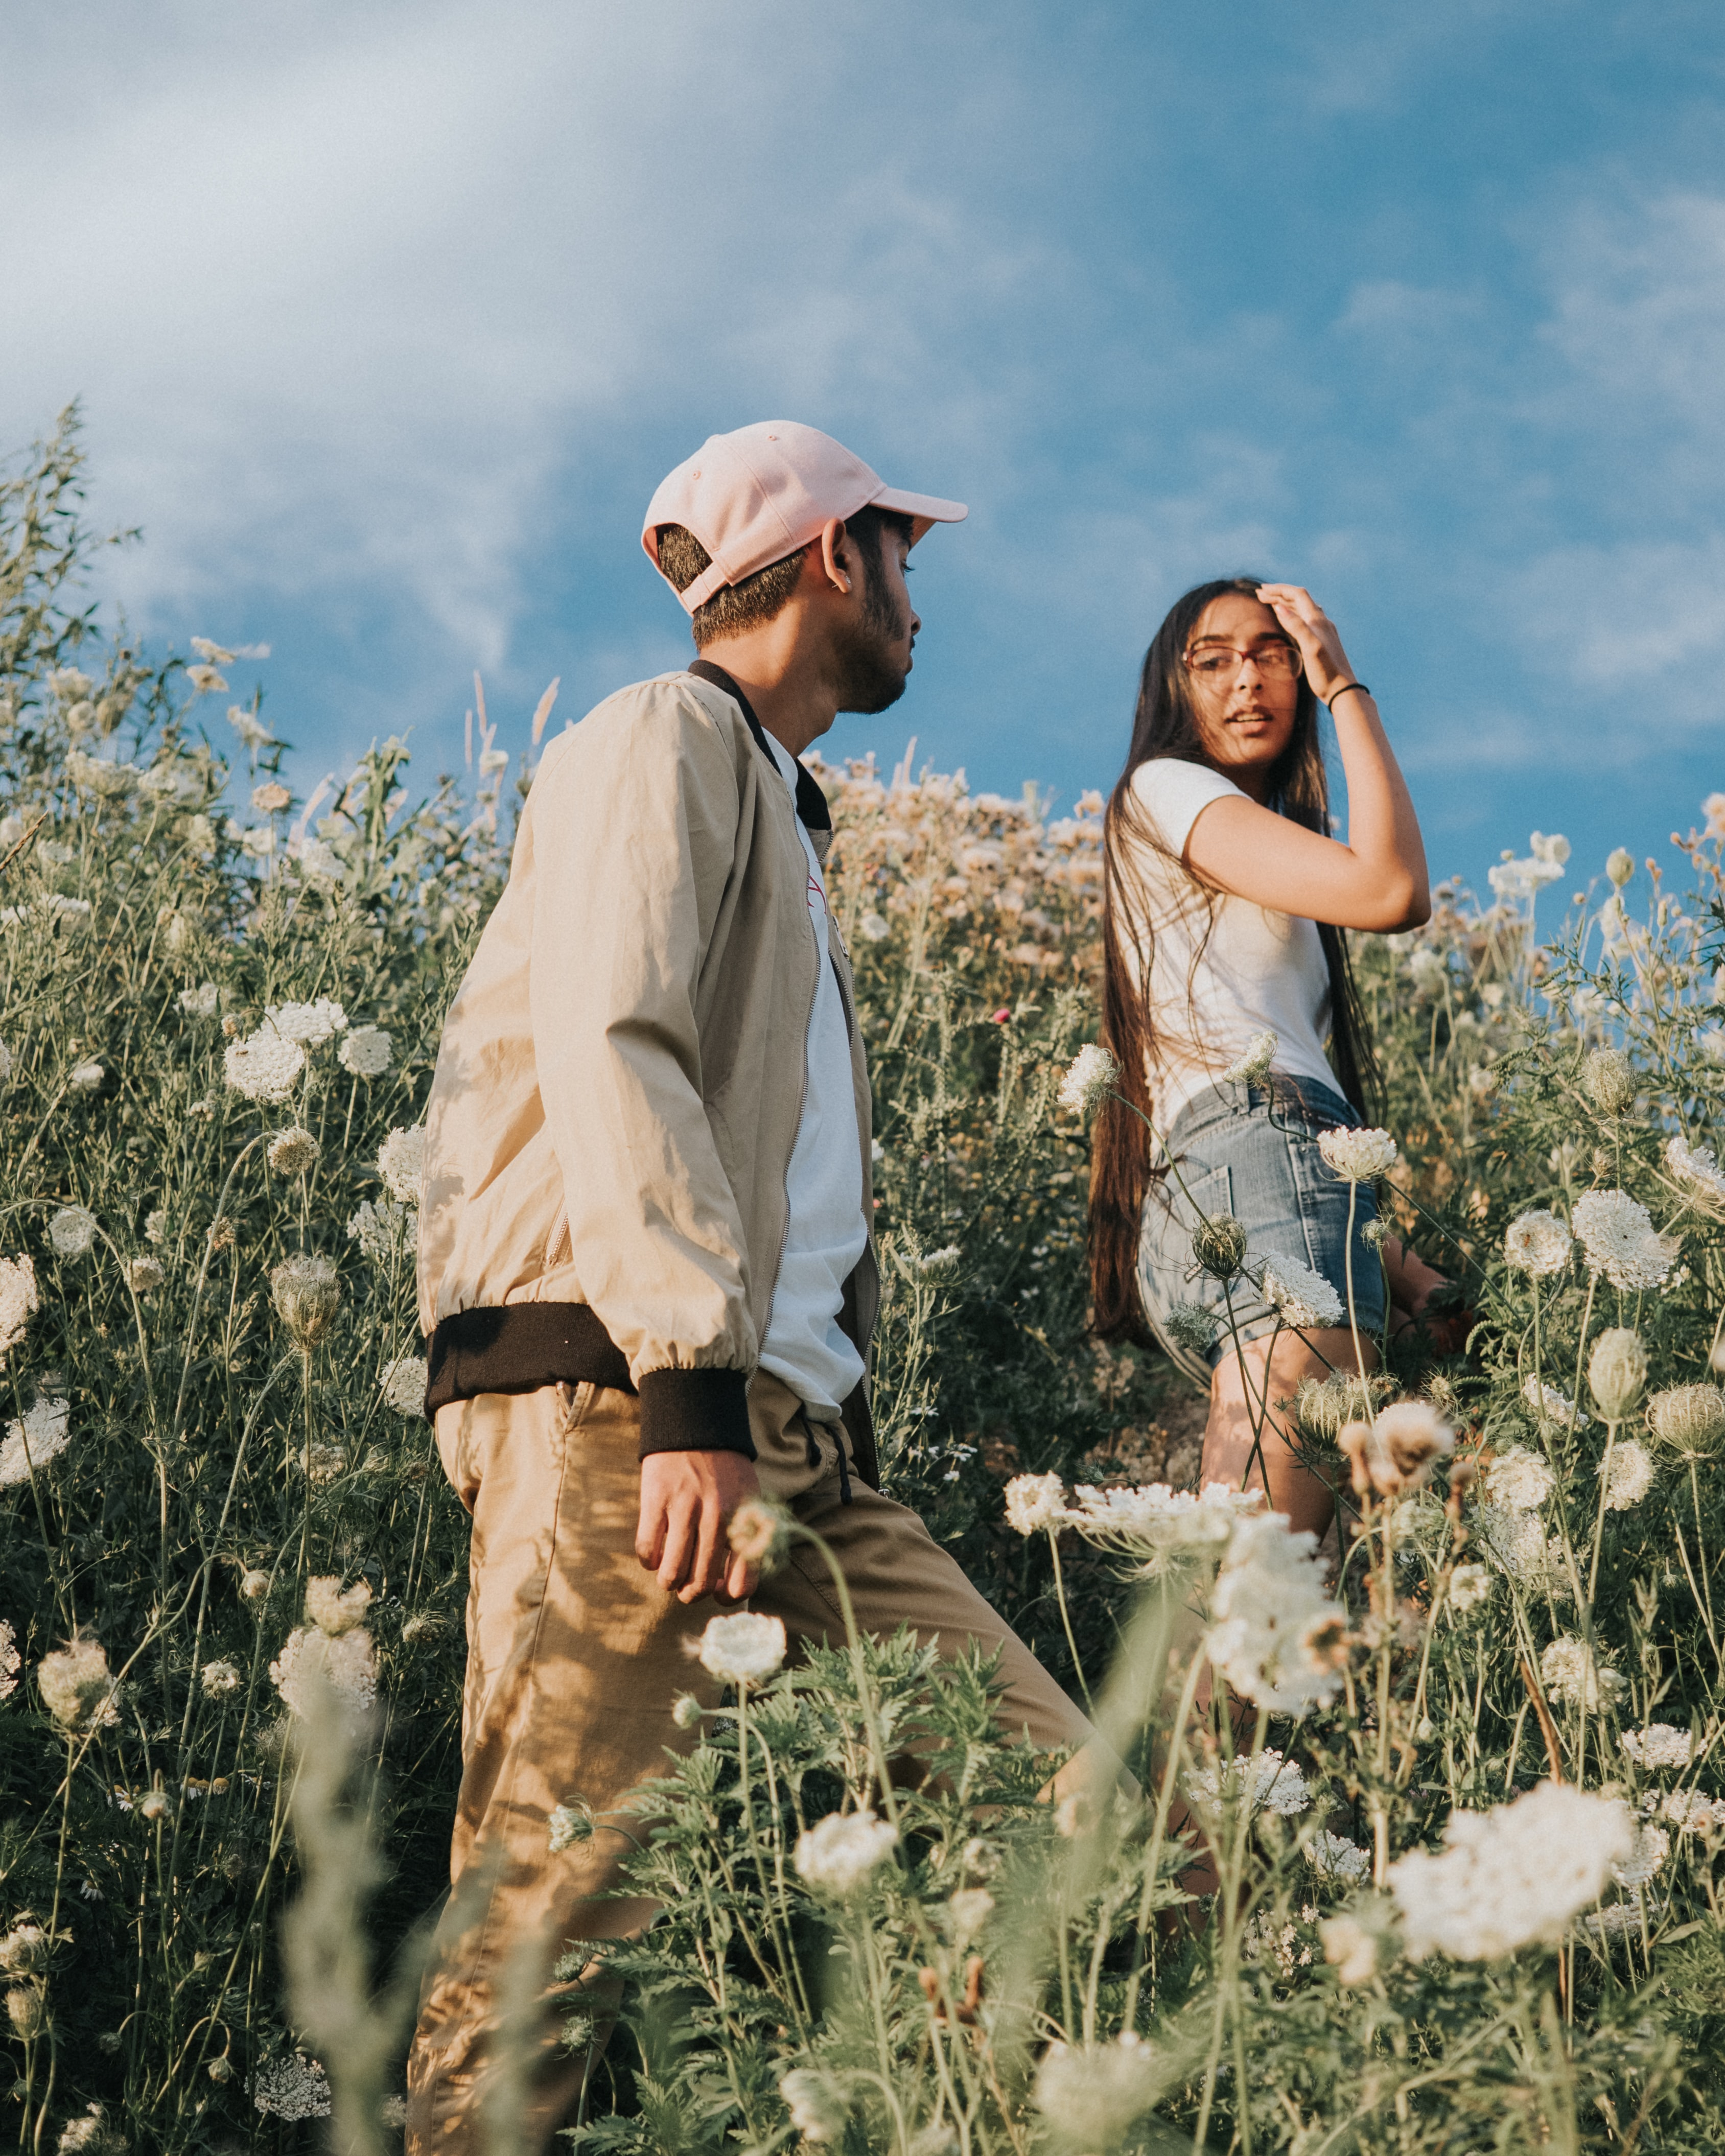 A guy and a girl walking through a flowery meadow